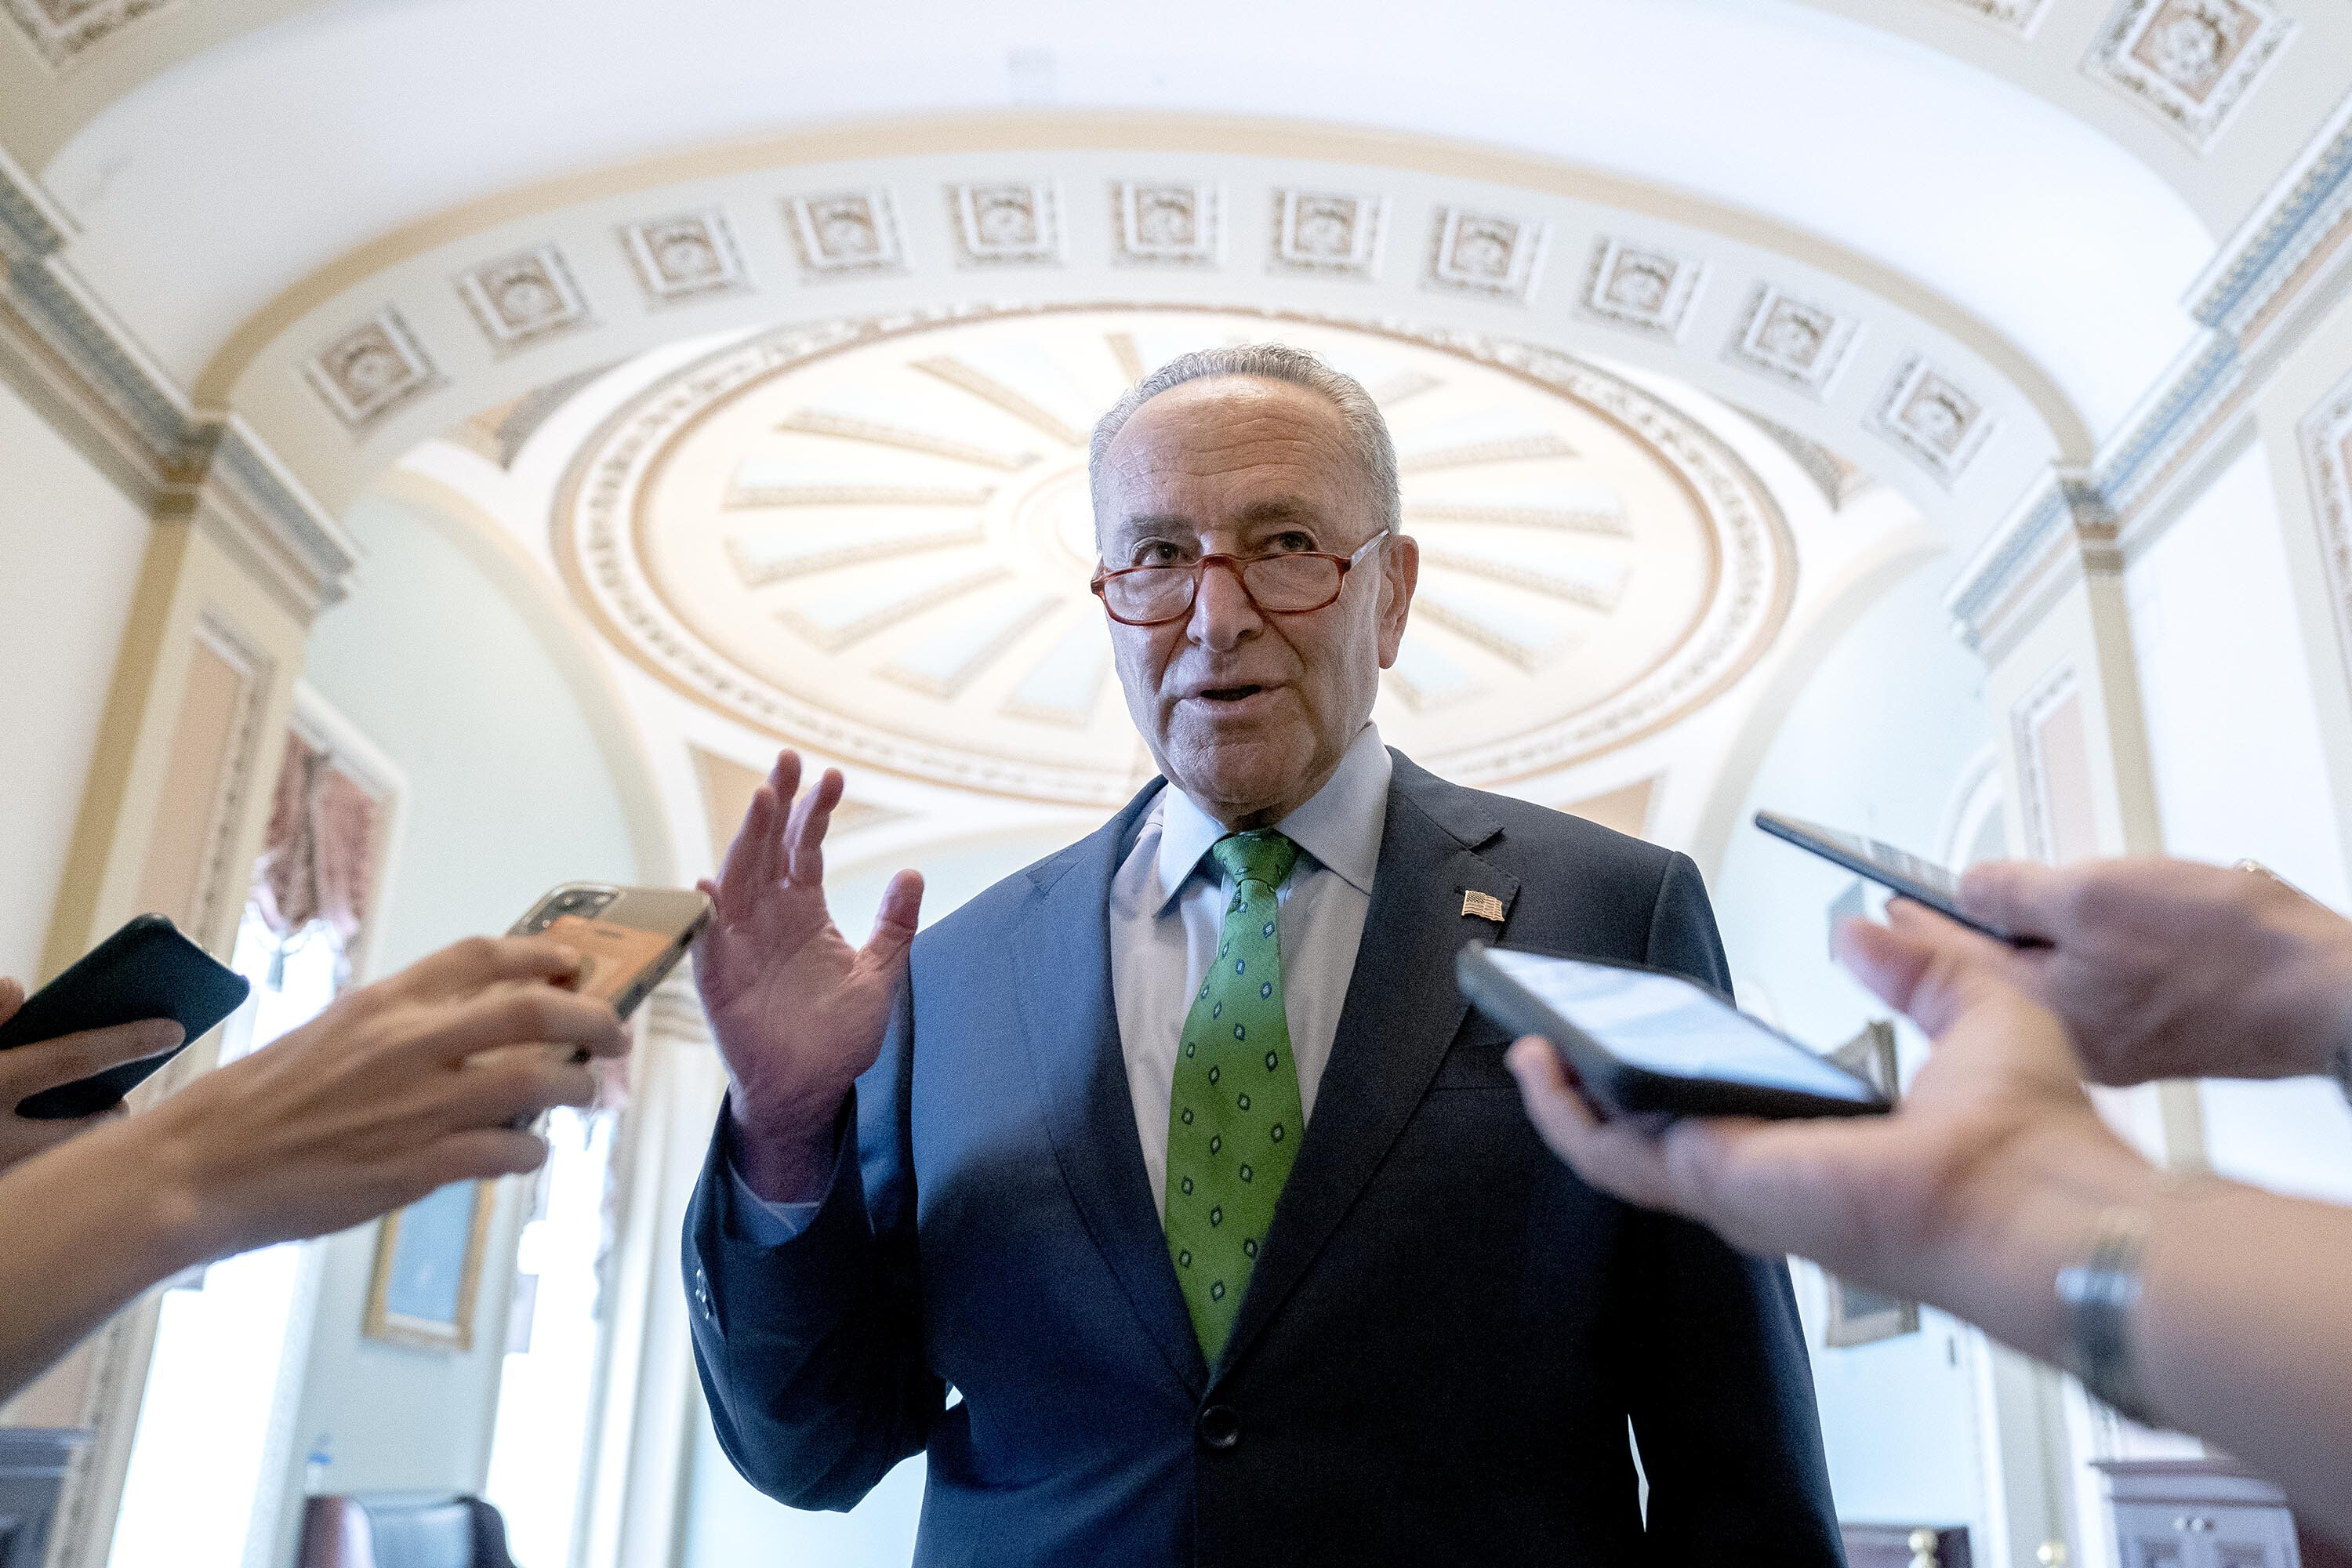 Schumer warns on debt ceiling: 'It's not too late, but it's getting dangerously close'